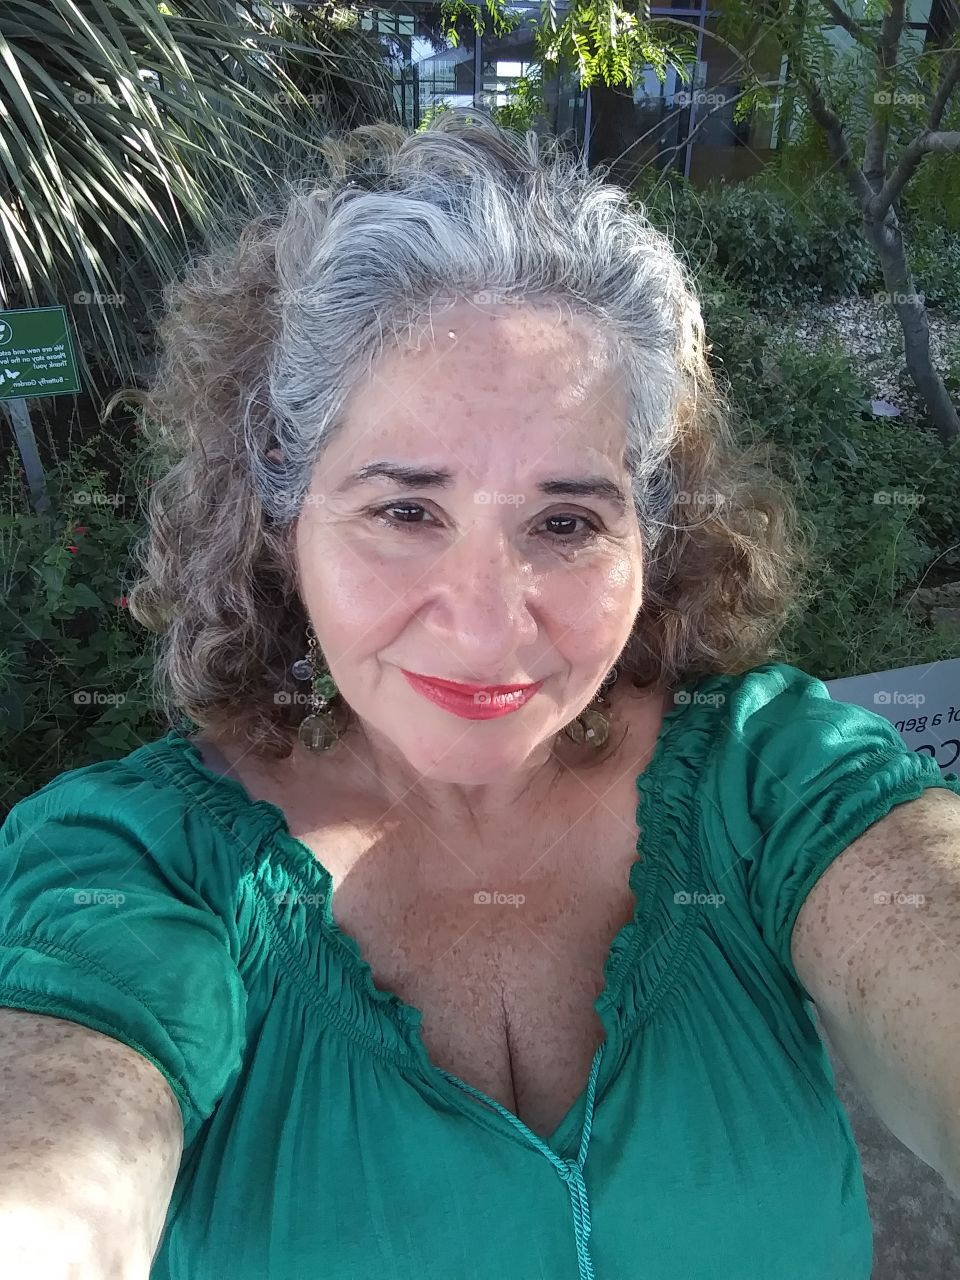 Senior Citizen, Baby boomer, Older Woman, Hispanic Woman, Older lady, sexy lady, cleavage, gray hair, freckles